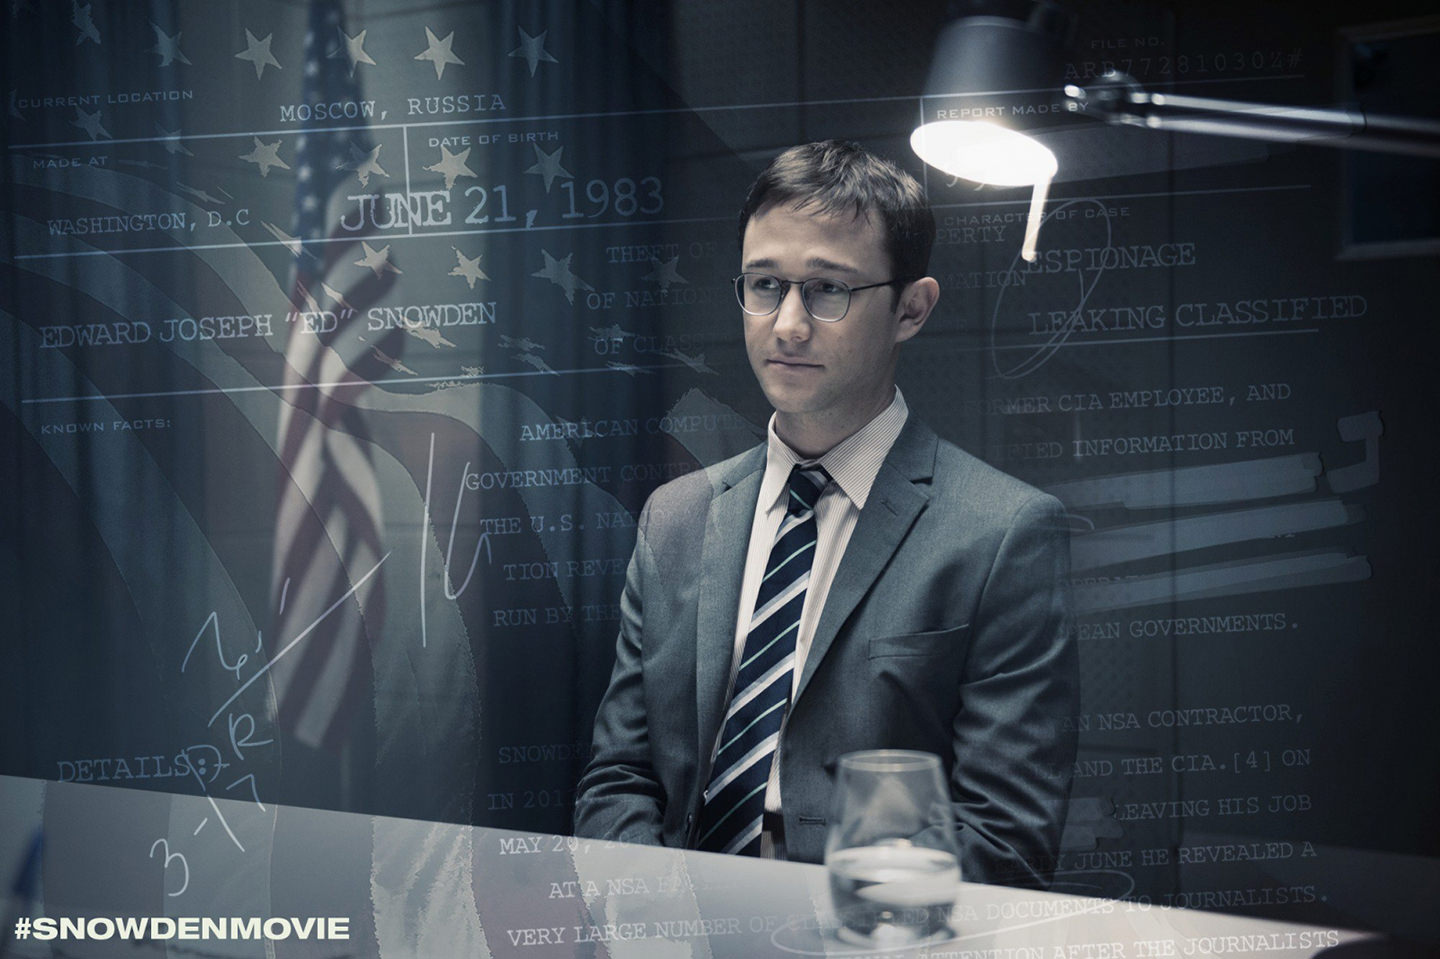 Blog-mode-And-The-City-Lifestyle-Cinq-Petites-Choses-195-Snowden